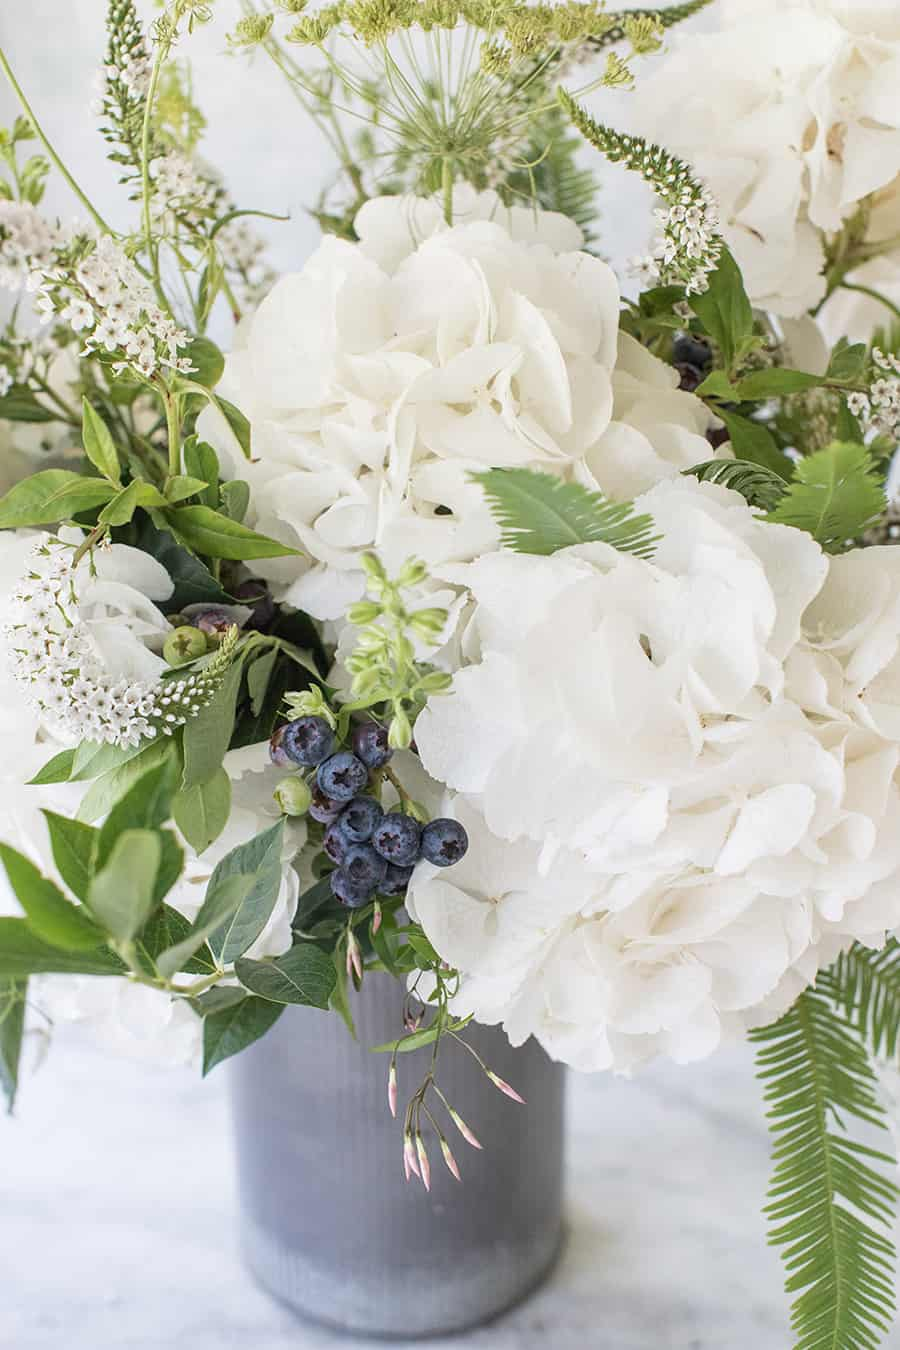 White and green flowers with blueberries in a galvanized vase.